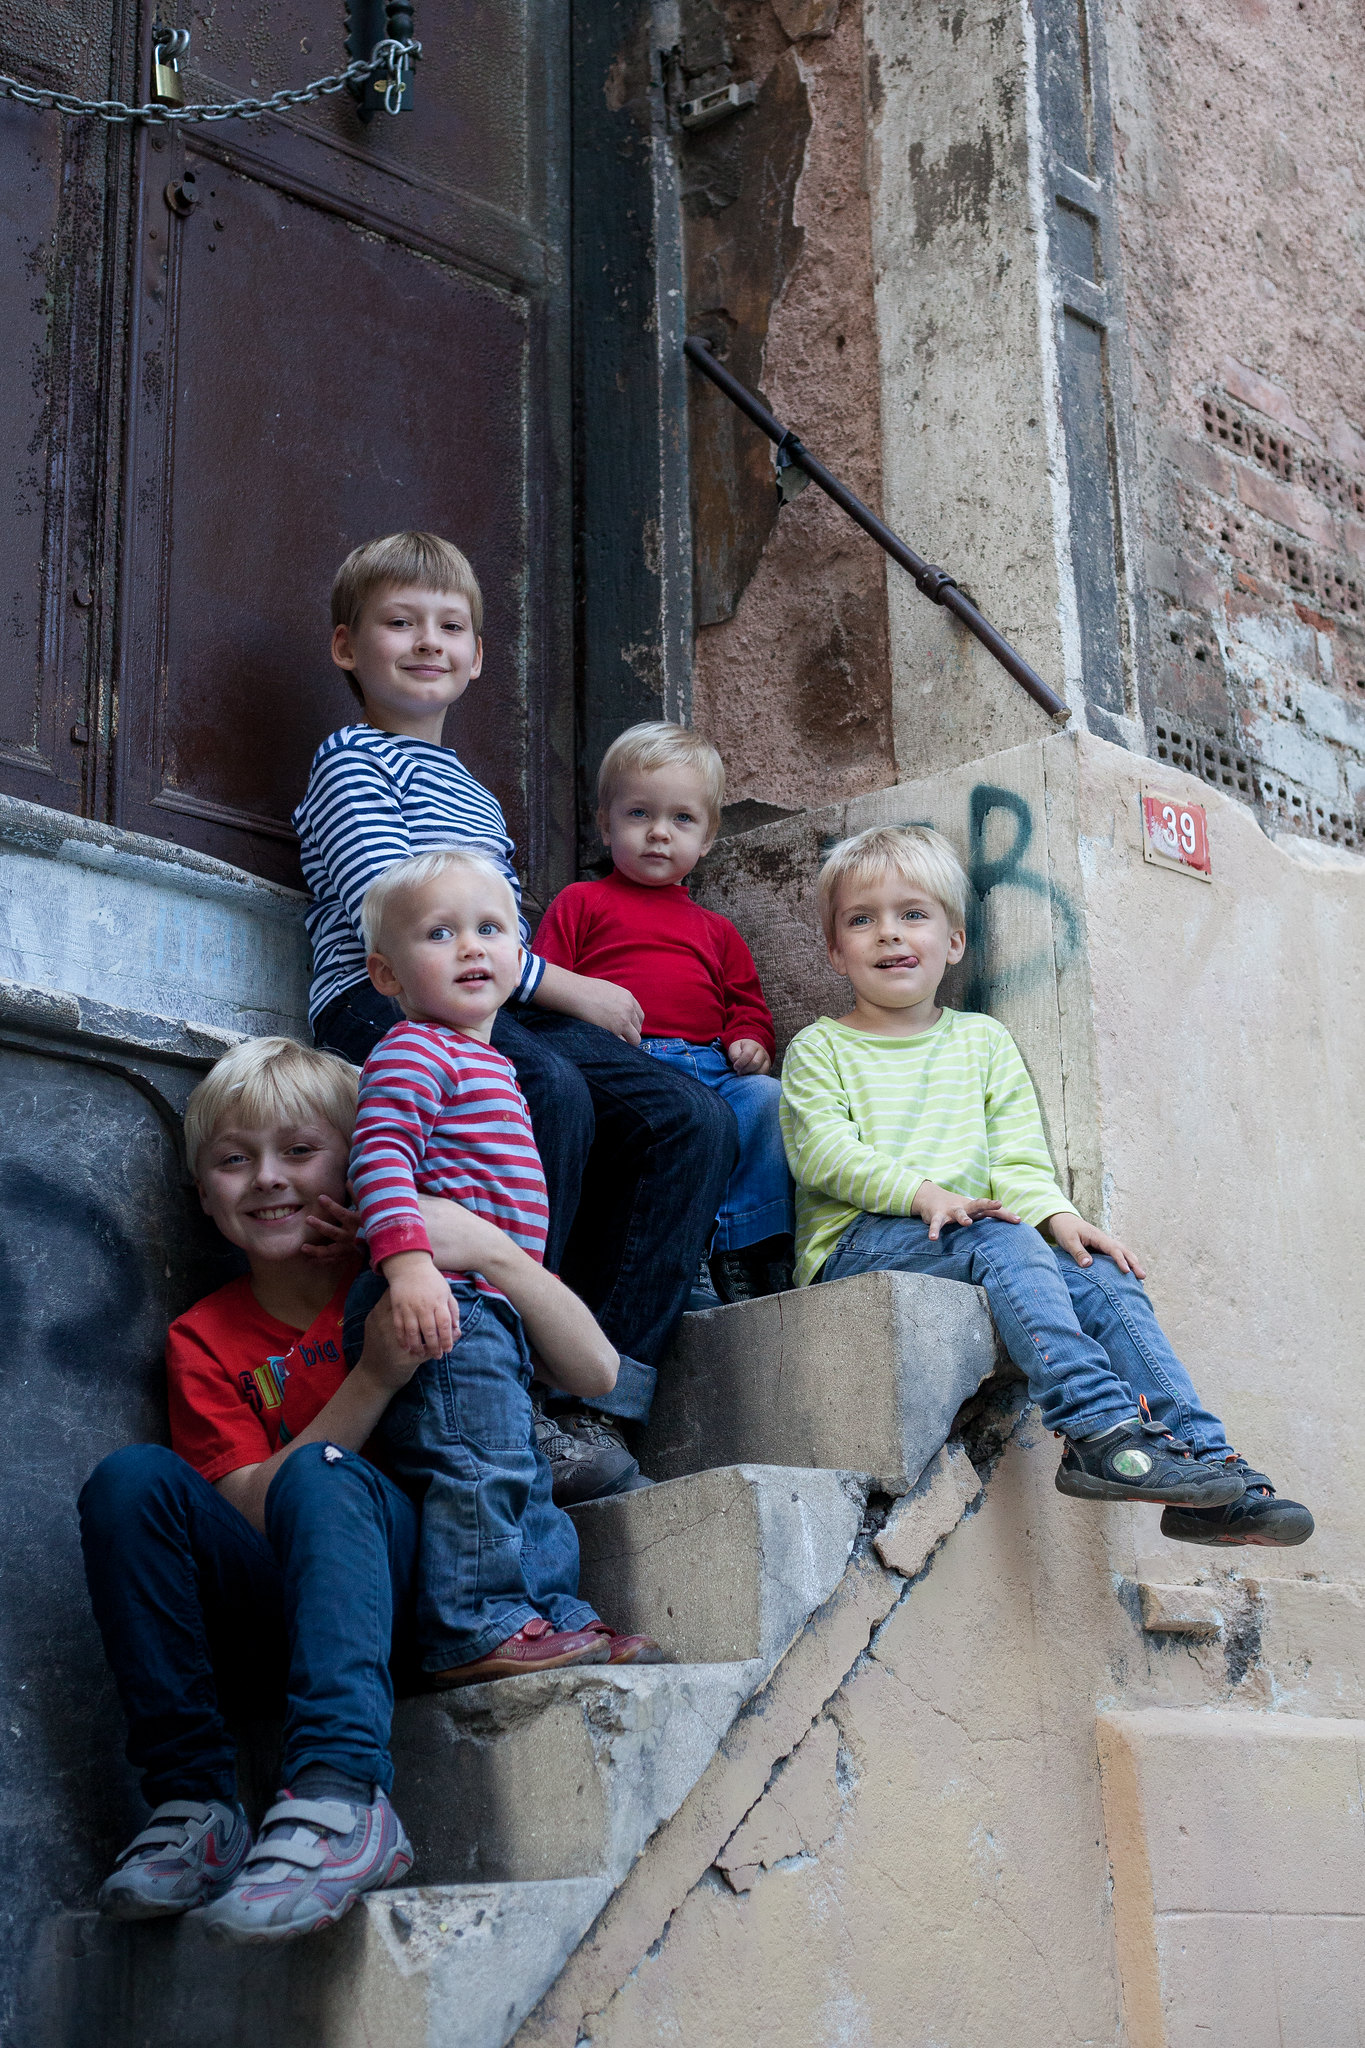 5 of our 8 kiddos.